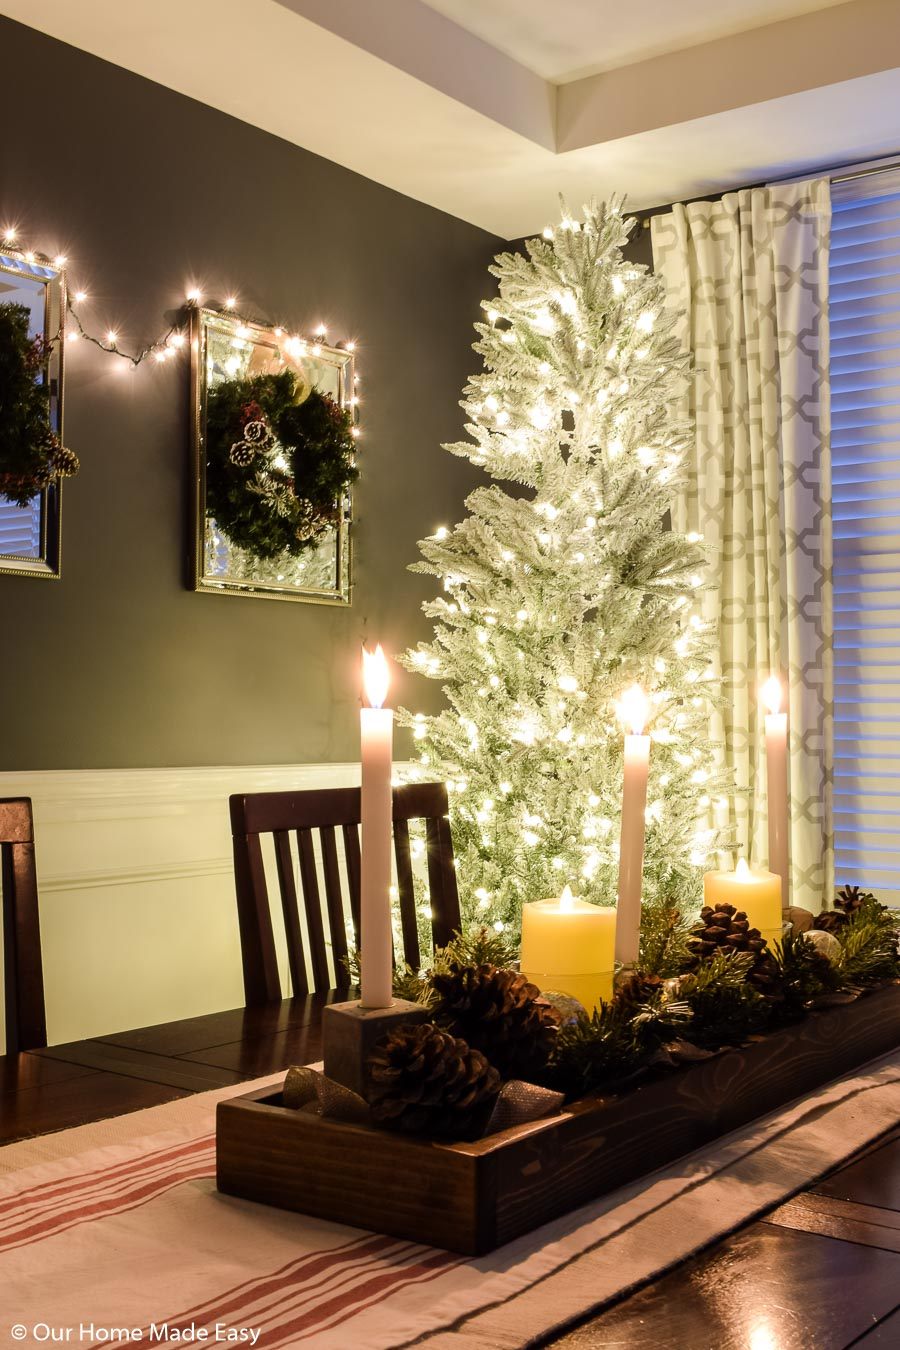 This all-white frosted Christmas tree brightens up our dining room